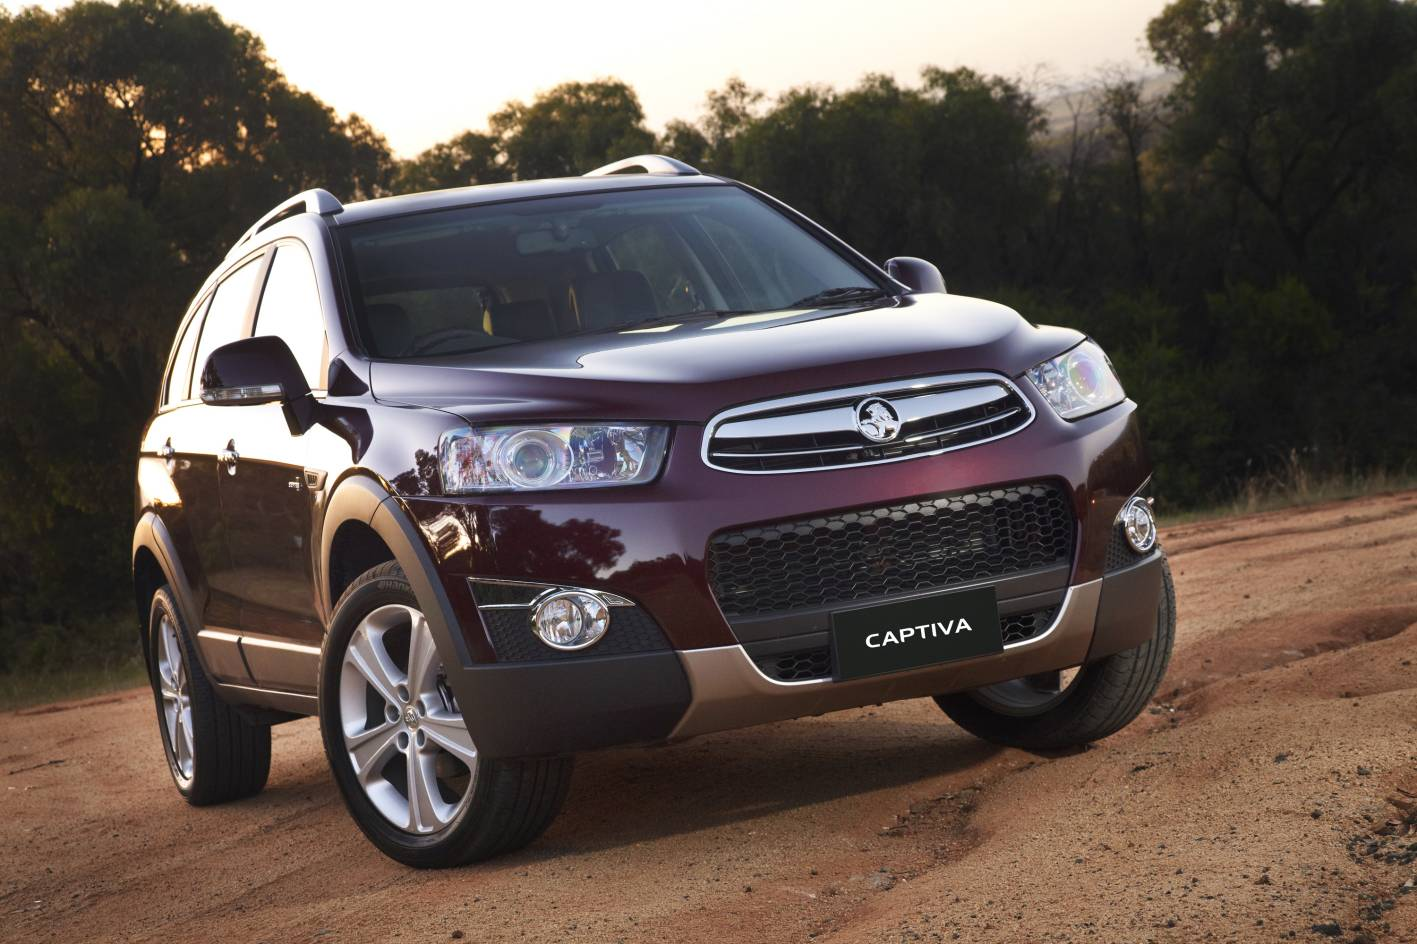 hight resolution of john what are your thoughts on the holden captiva ltz i am looking at a mid size suv with 7 seat capability which will be seldom used